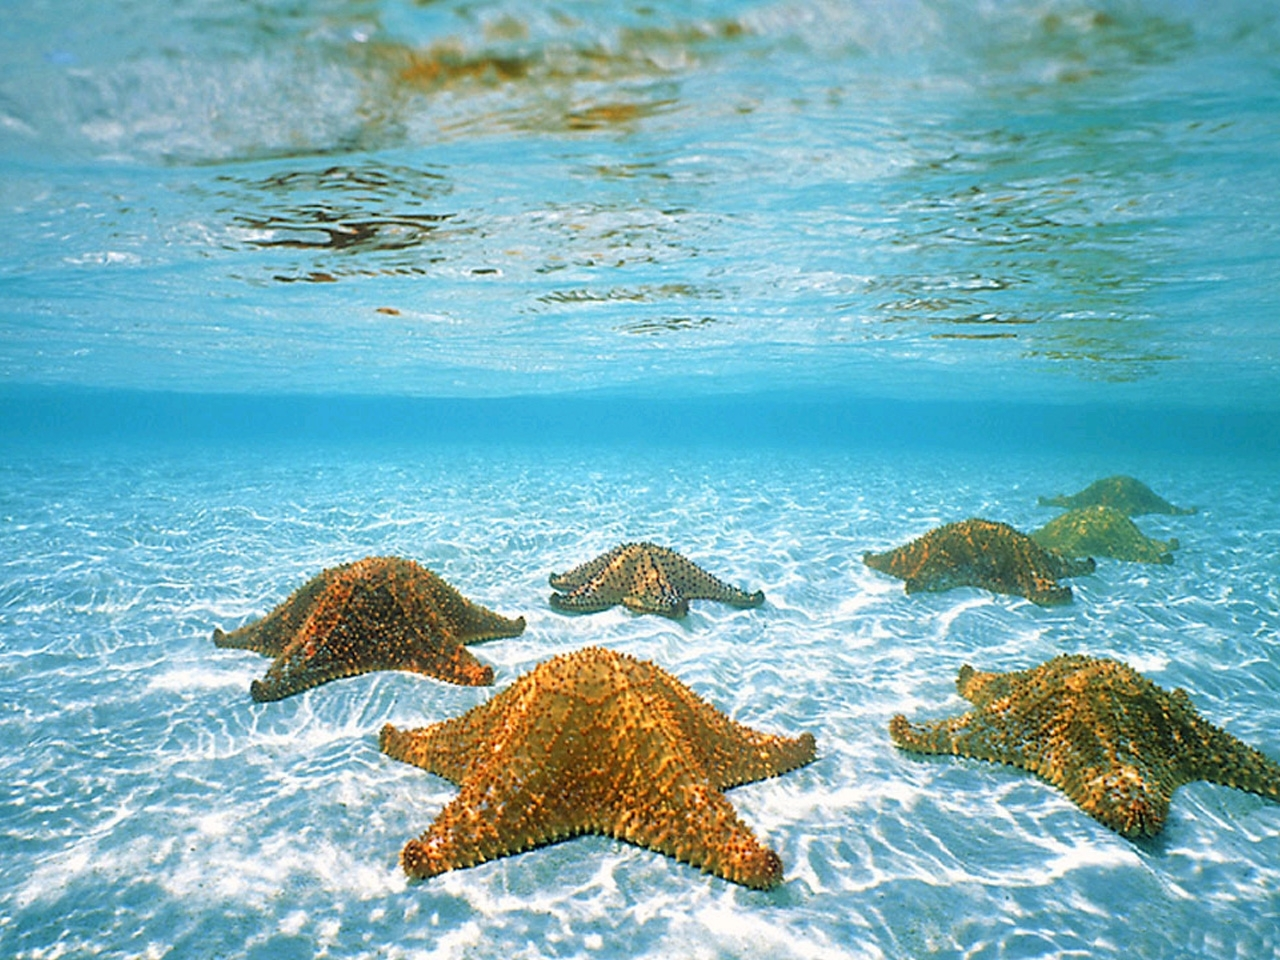 38508 download wallpaper Animals, Landscape, Sea, Starfish screensavers and pictures for free